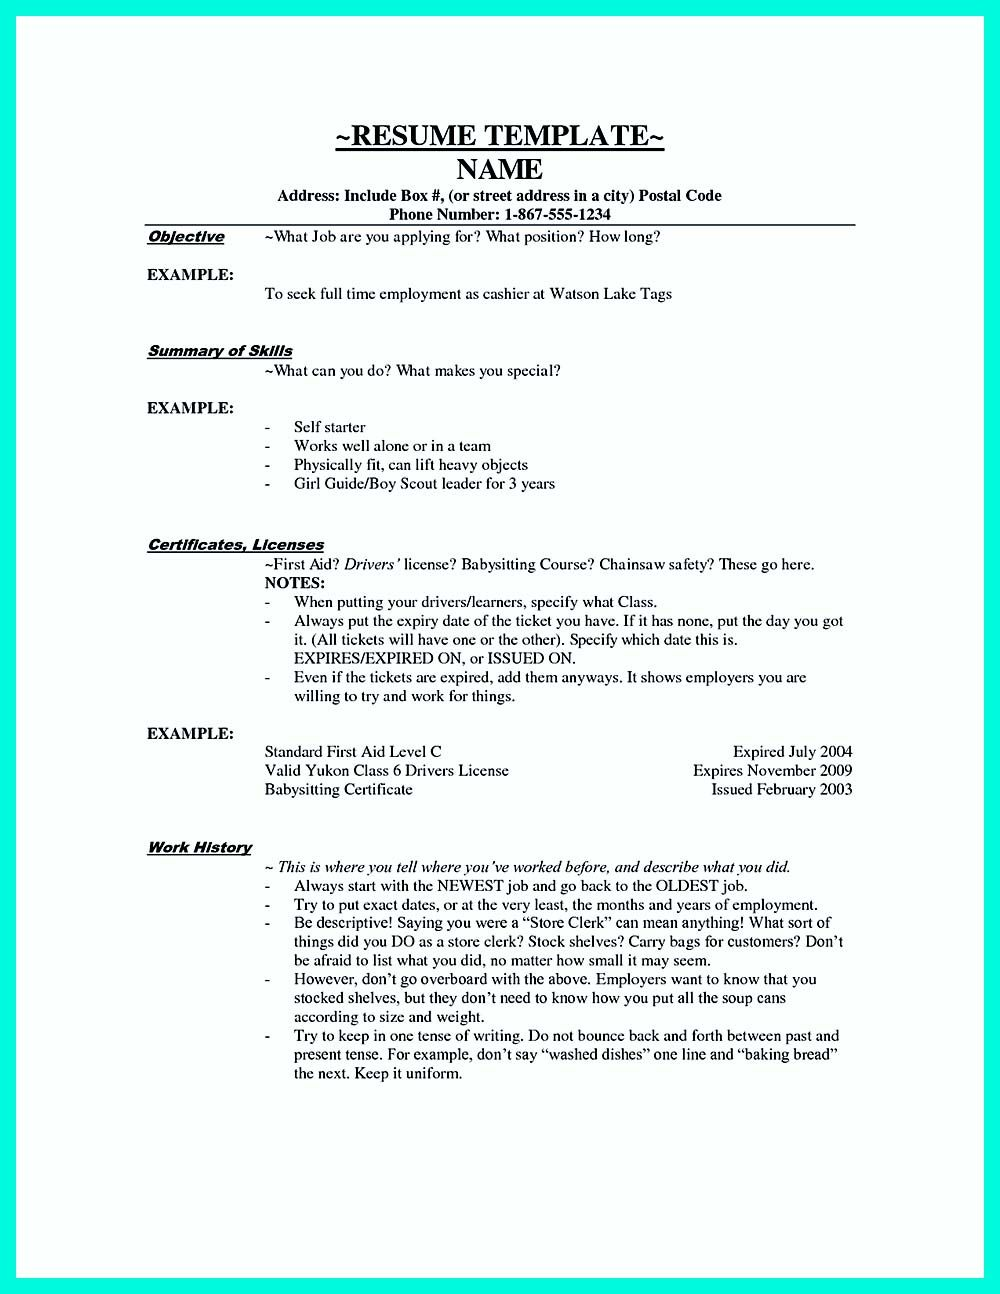 If You Want To Make A Great And Impressive Cashier Resume Make